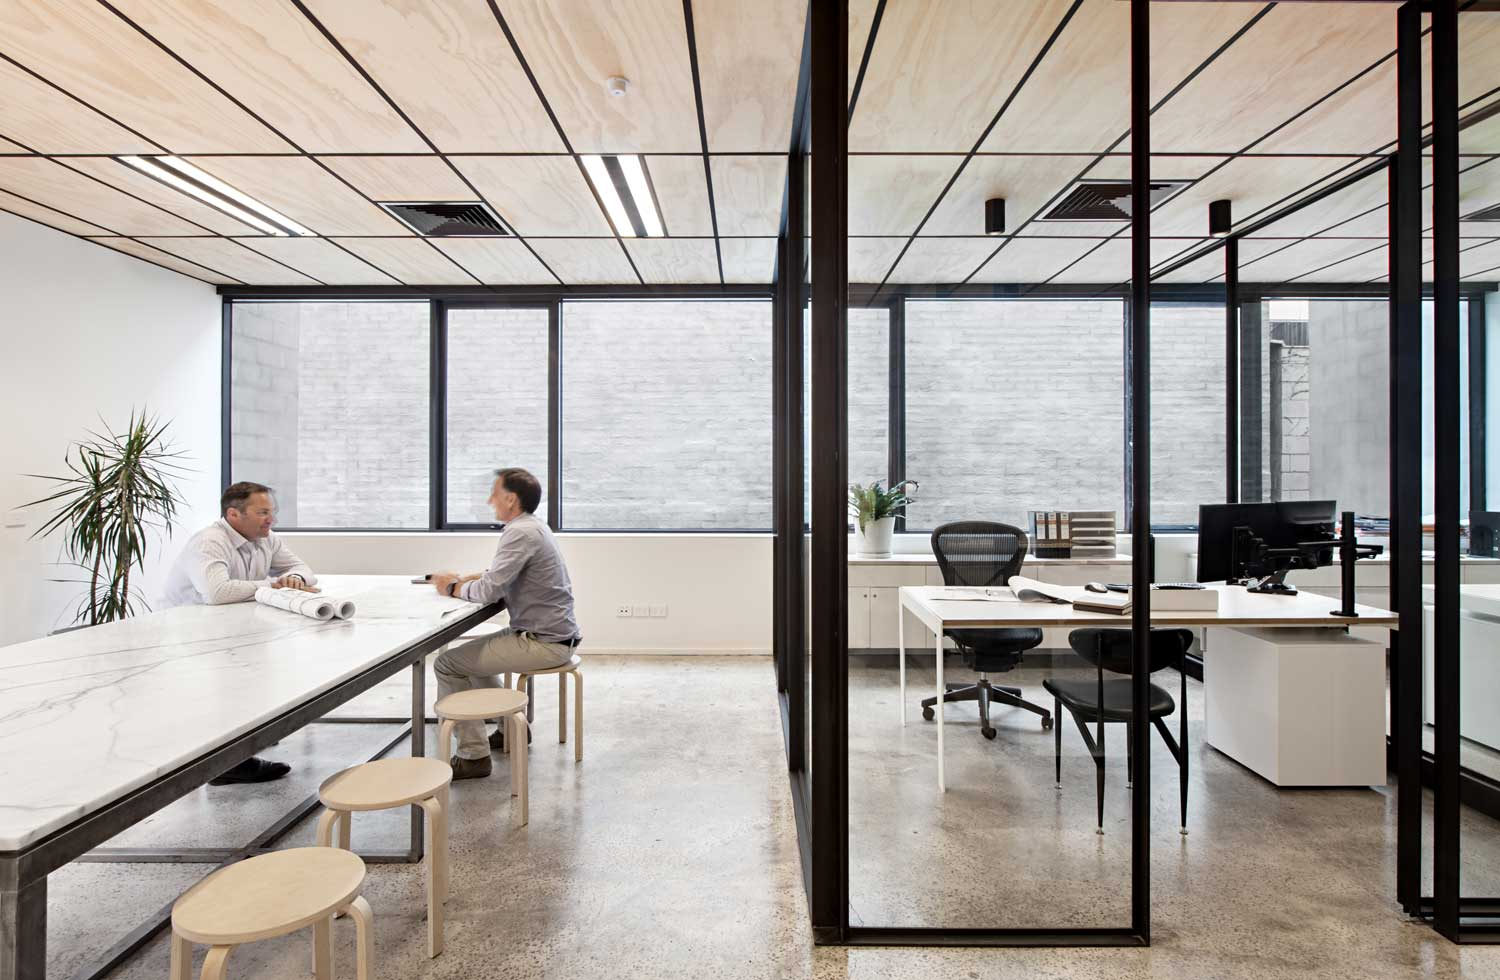 shared coworking office verkspace space opening toronto flexible